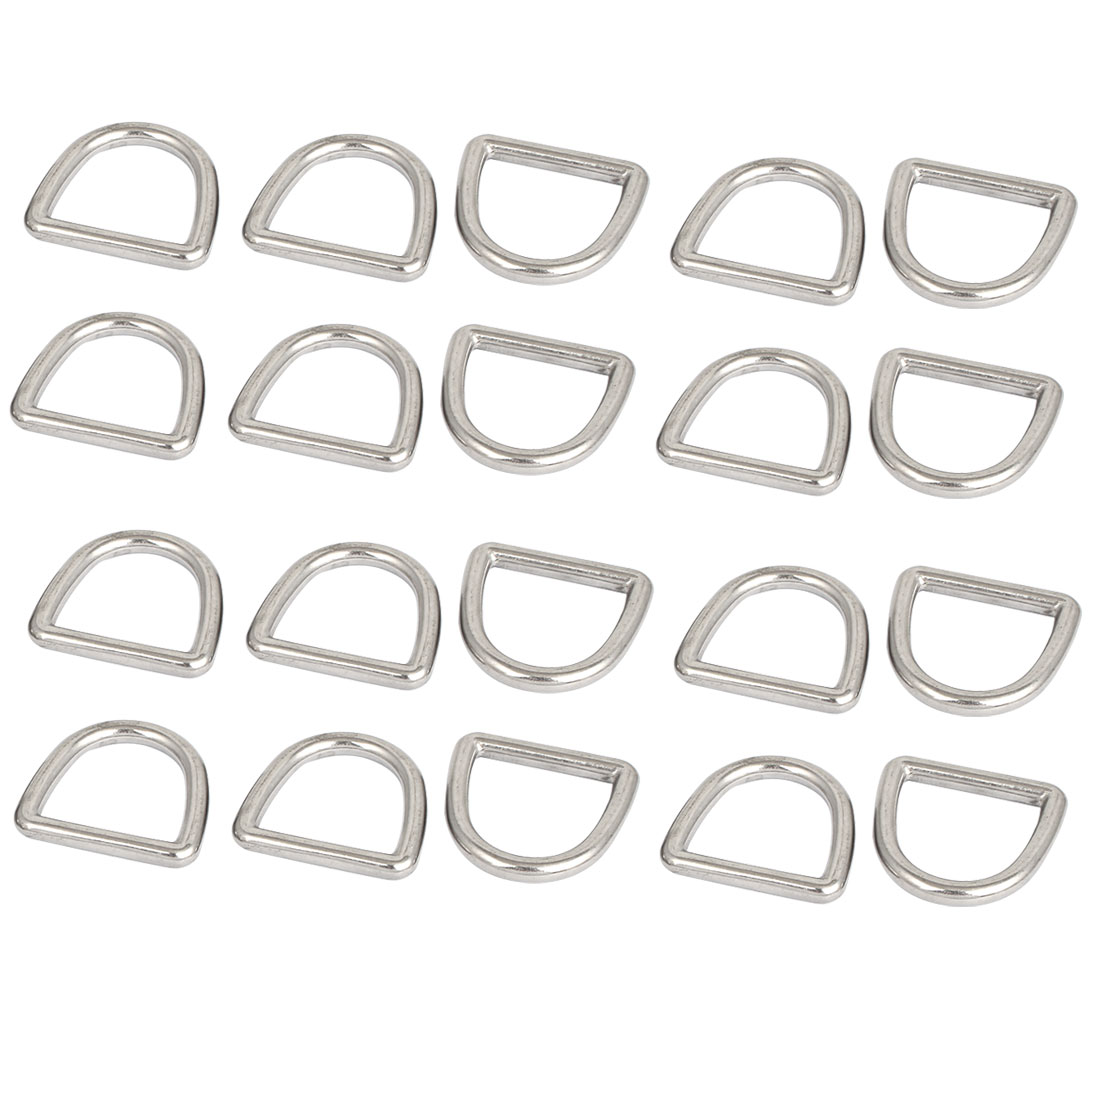 Stainless Steel D Ring Hooks D-Shaped Buckles Handbag Belt Buckle 20 Pcs